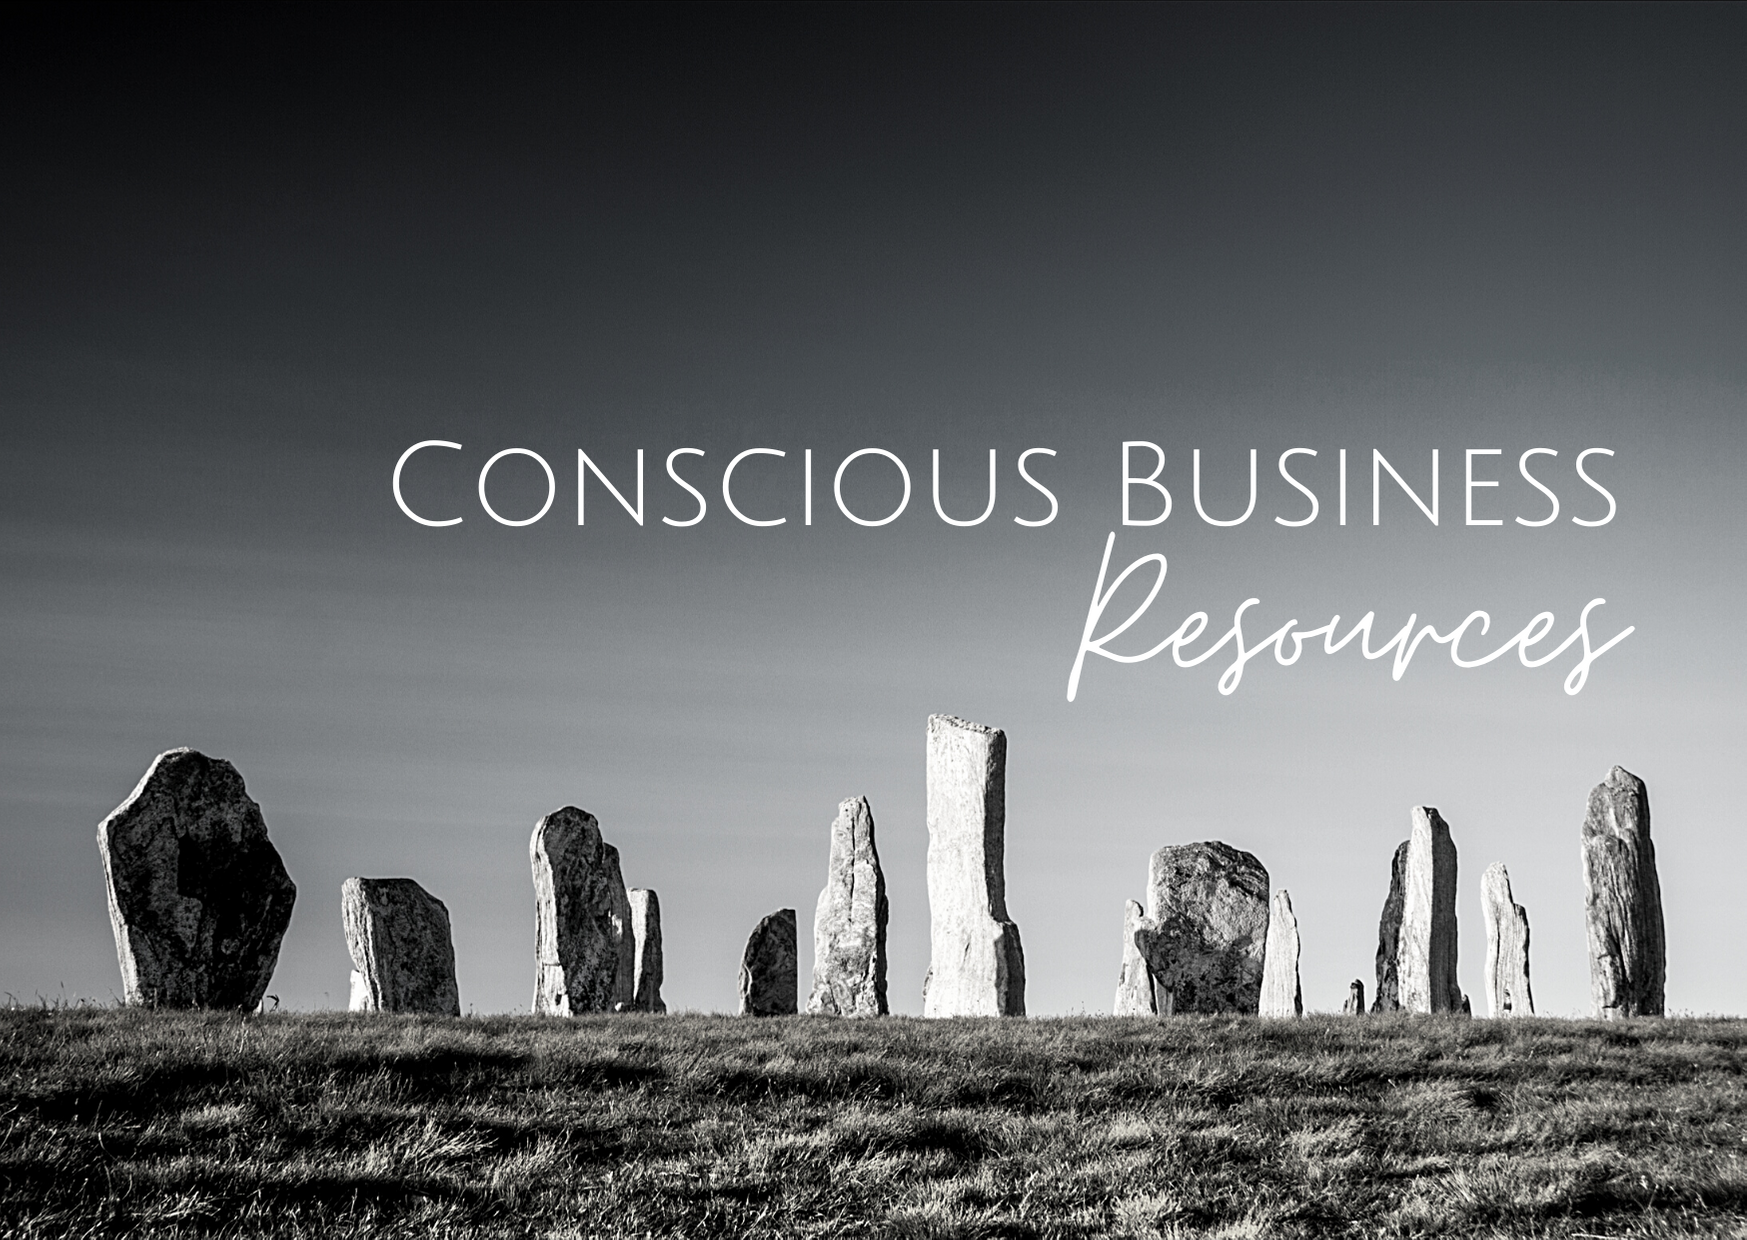 Conscious Business Resources